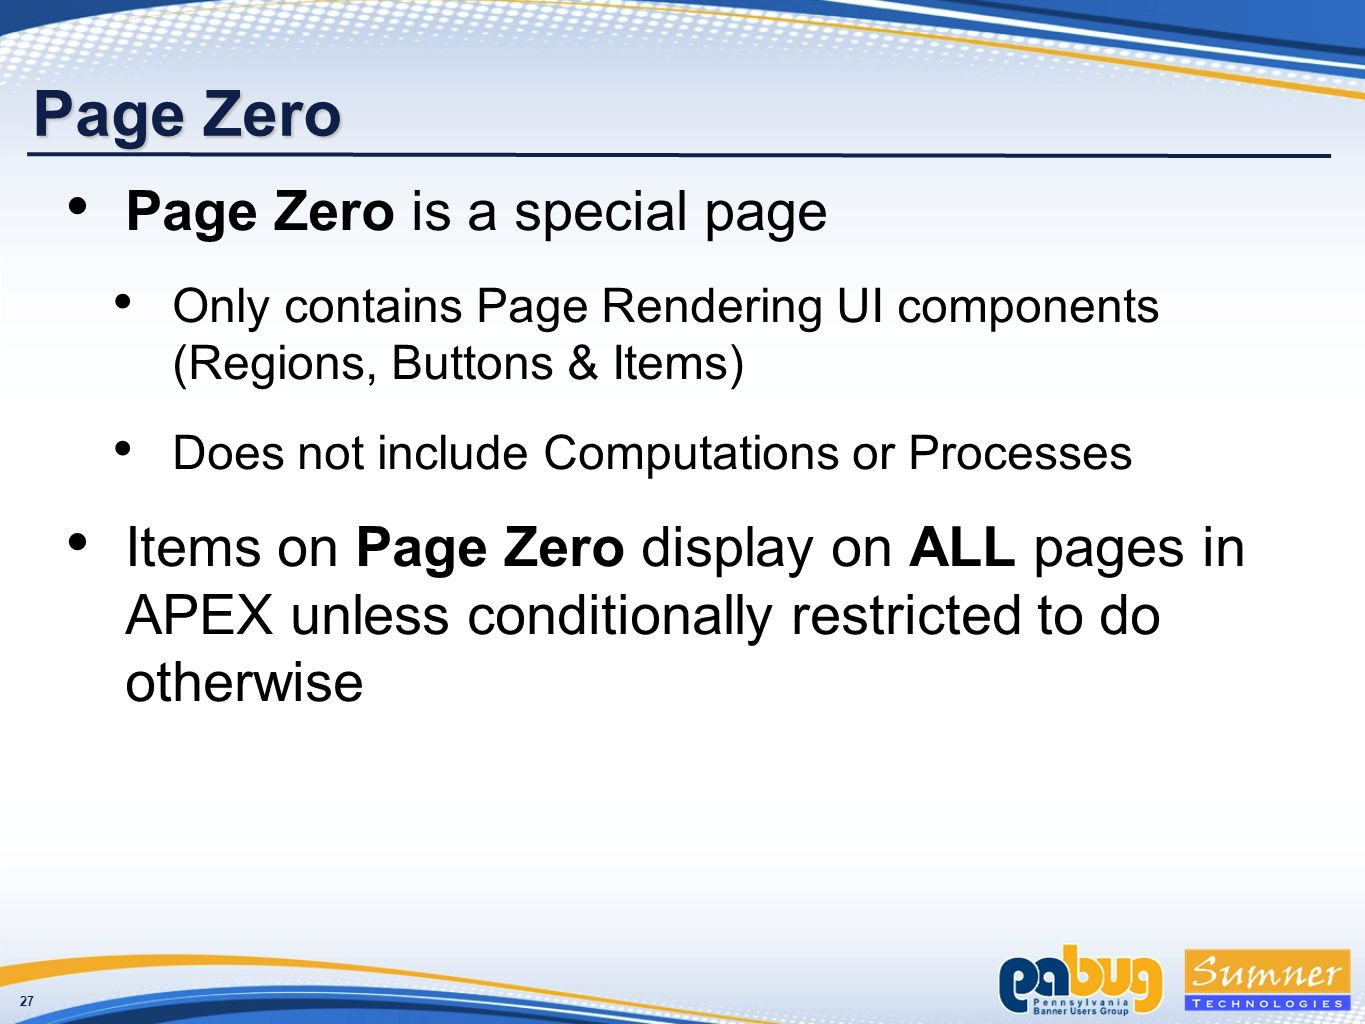 27 Page Zero Page Zero is a special page Only contains Page Rendering UI components (Regions, Buttons & Items) Does not include Computations or Processes Items on Page Zero display on ALL pages in APEX unless conditionally restricted to do otherwise